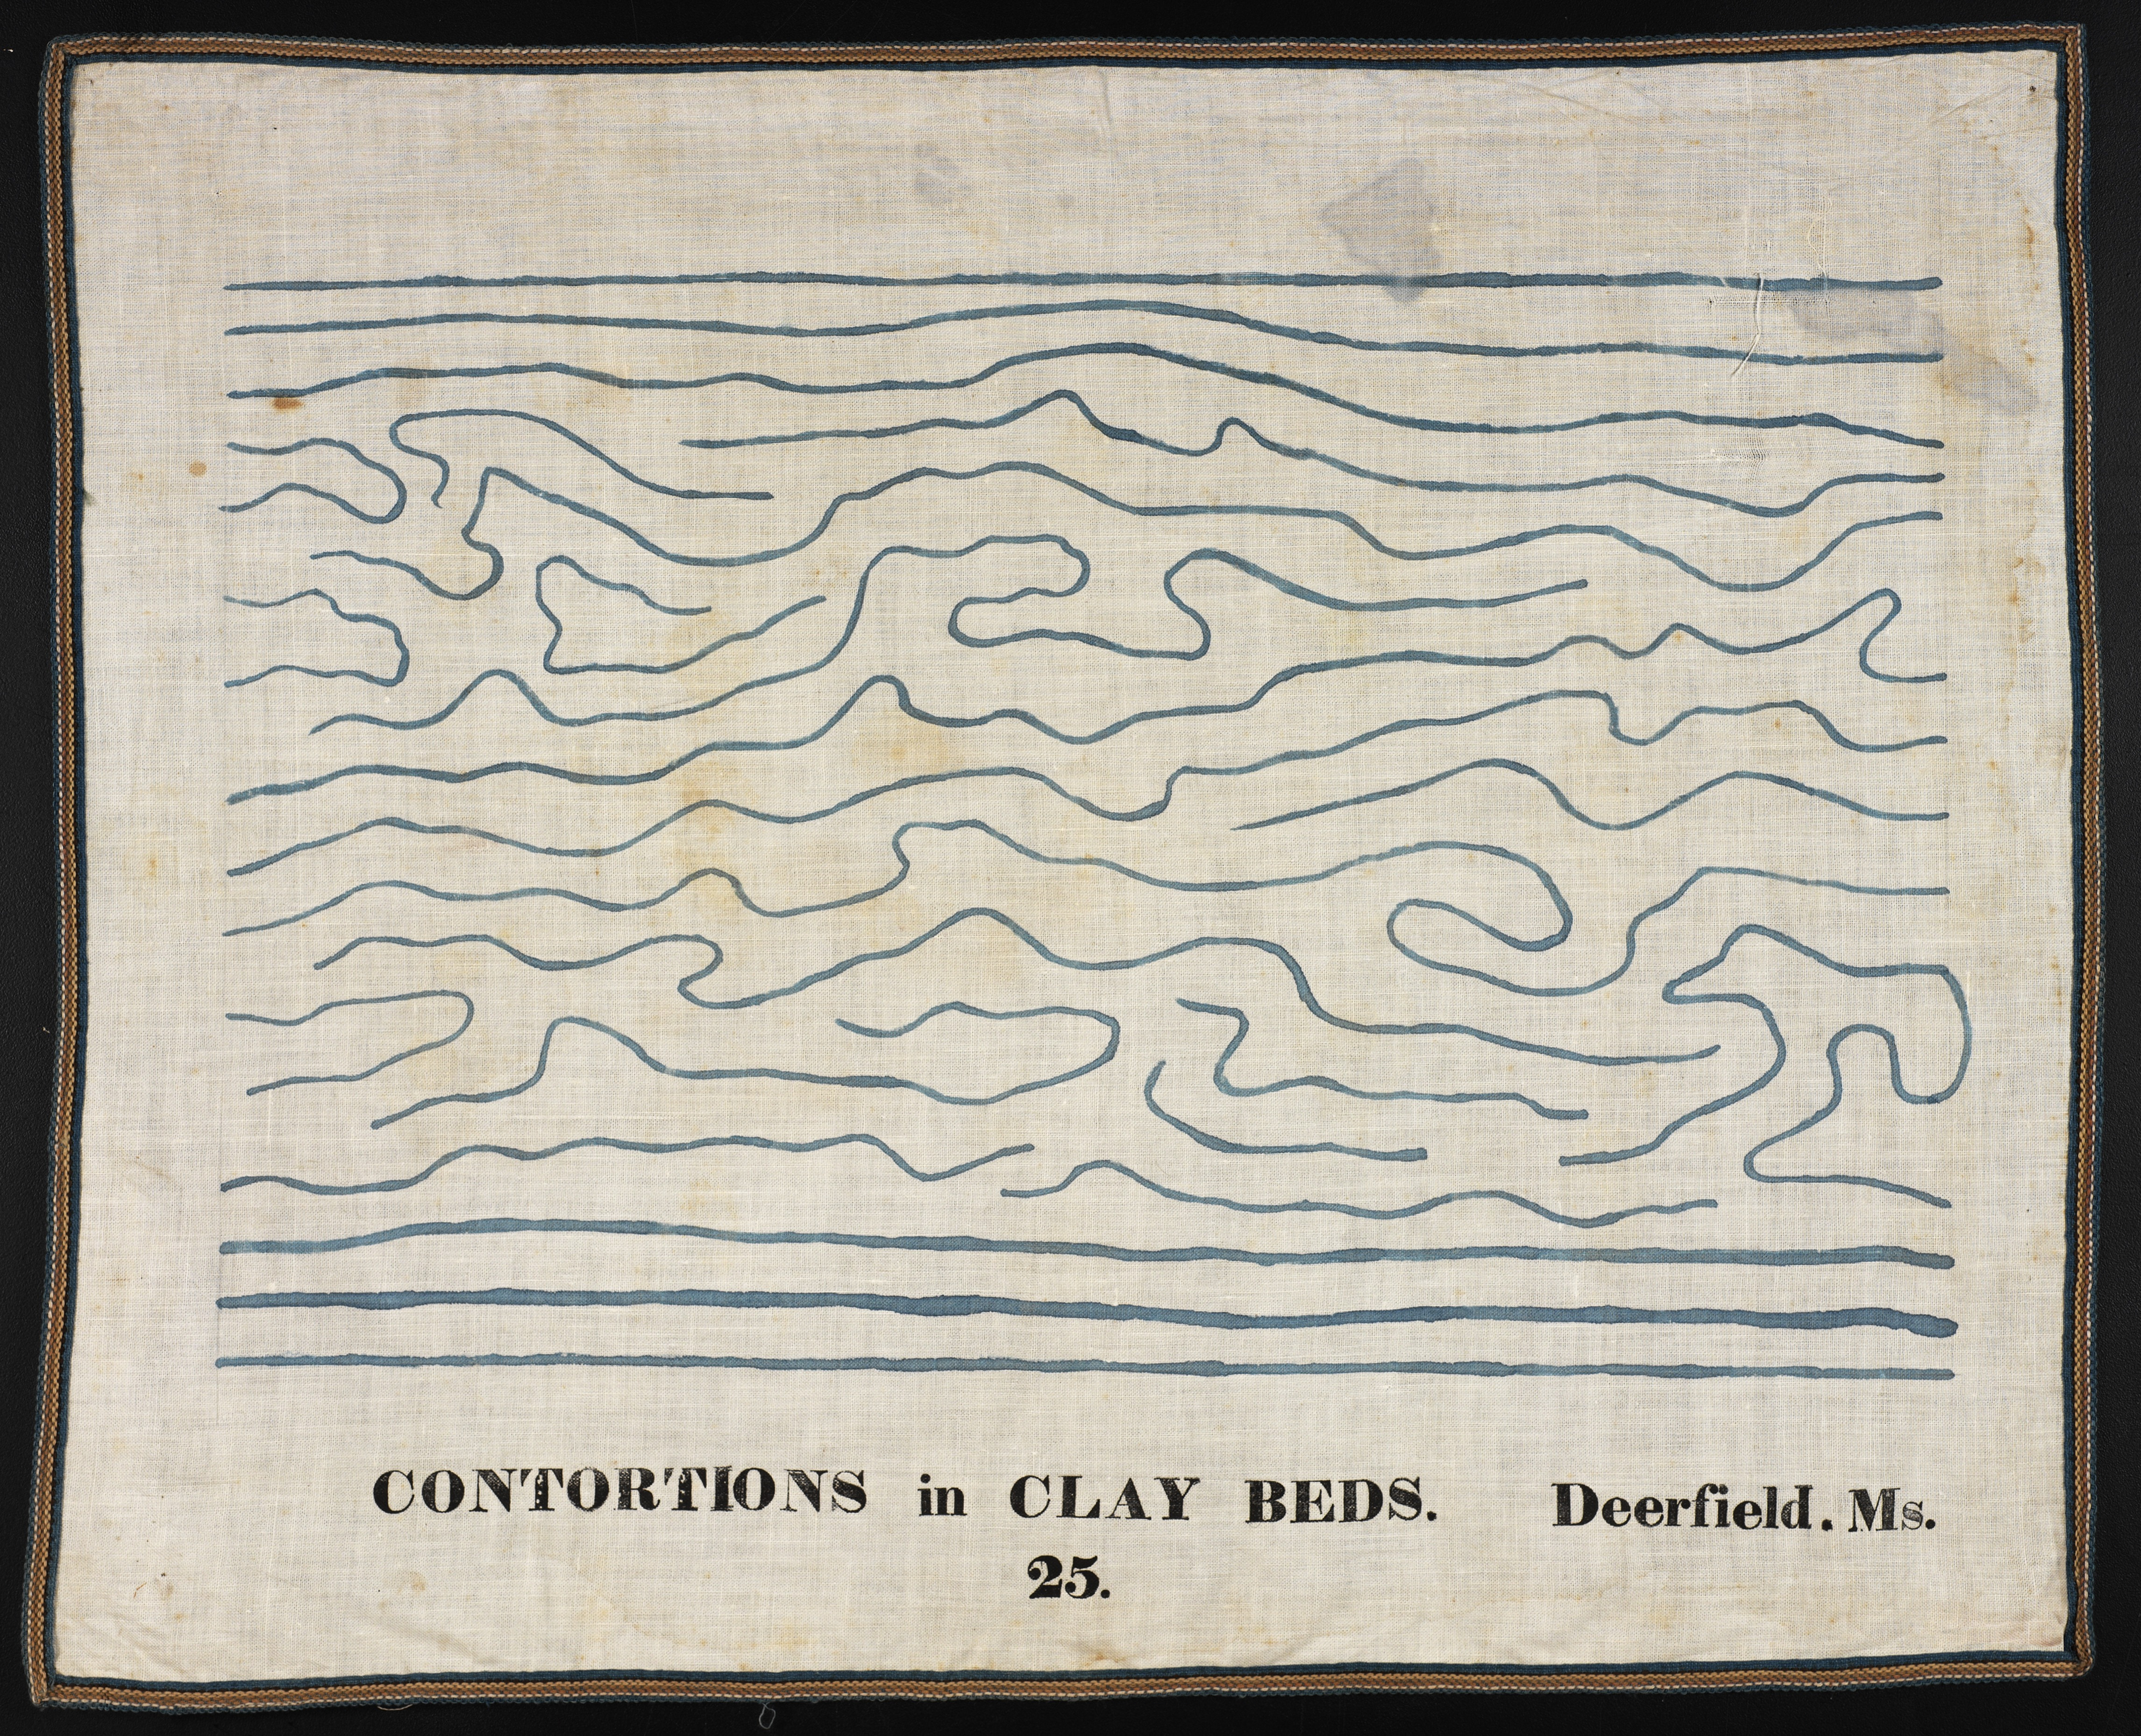 """25. Contortions in Clay Beds. Deerfield. Ms. Orra White Hitchcock (1796–1863) Amherst, Massachusetts 1828–1840 Pen and ink and watercolor on cotton, with woven tape binding 19 1/8 x 23 1/8"""" Amherst College Archives & Special Collections"""